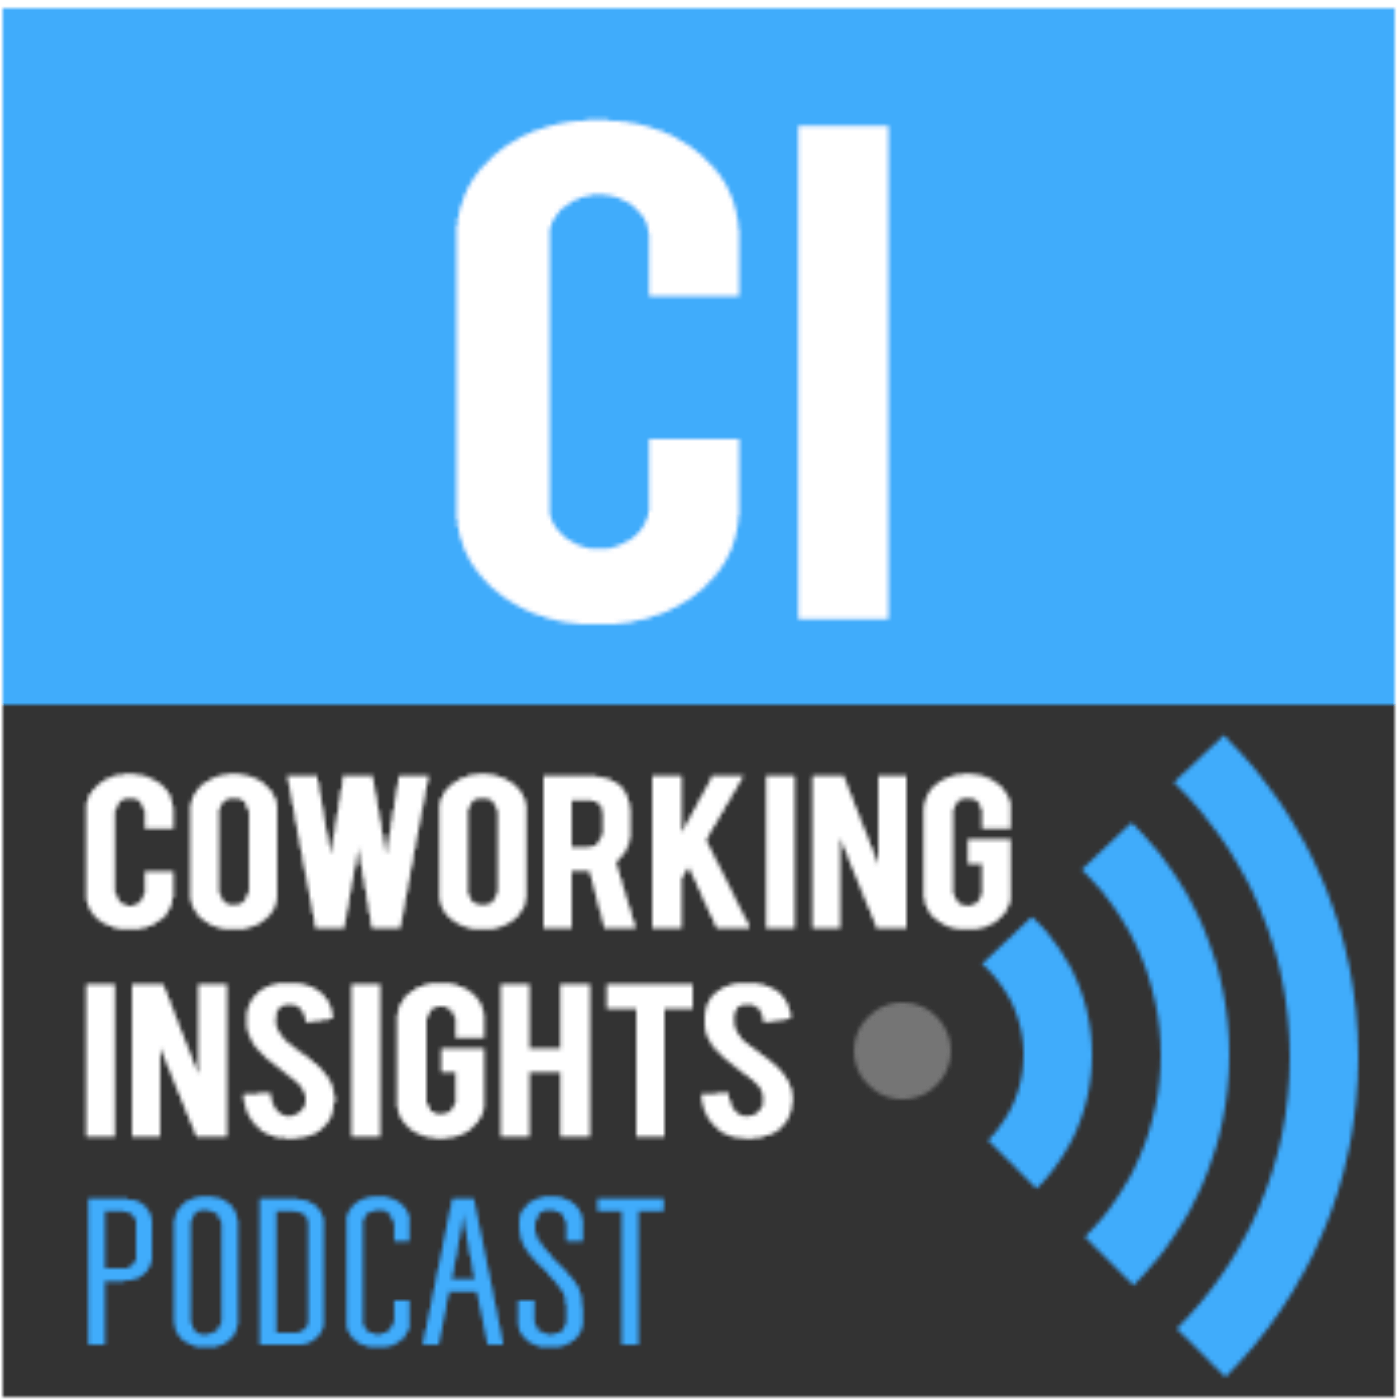 Ep 8 - Top Worker Demographics of Coworking Spaces in 2019